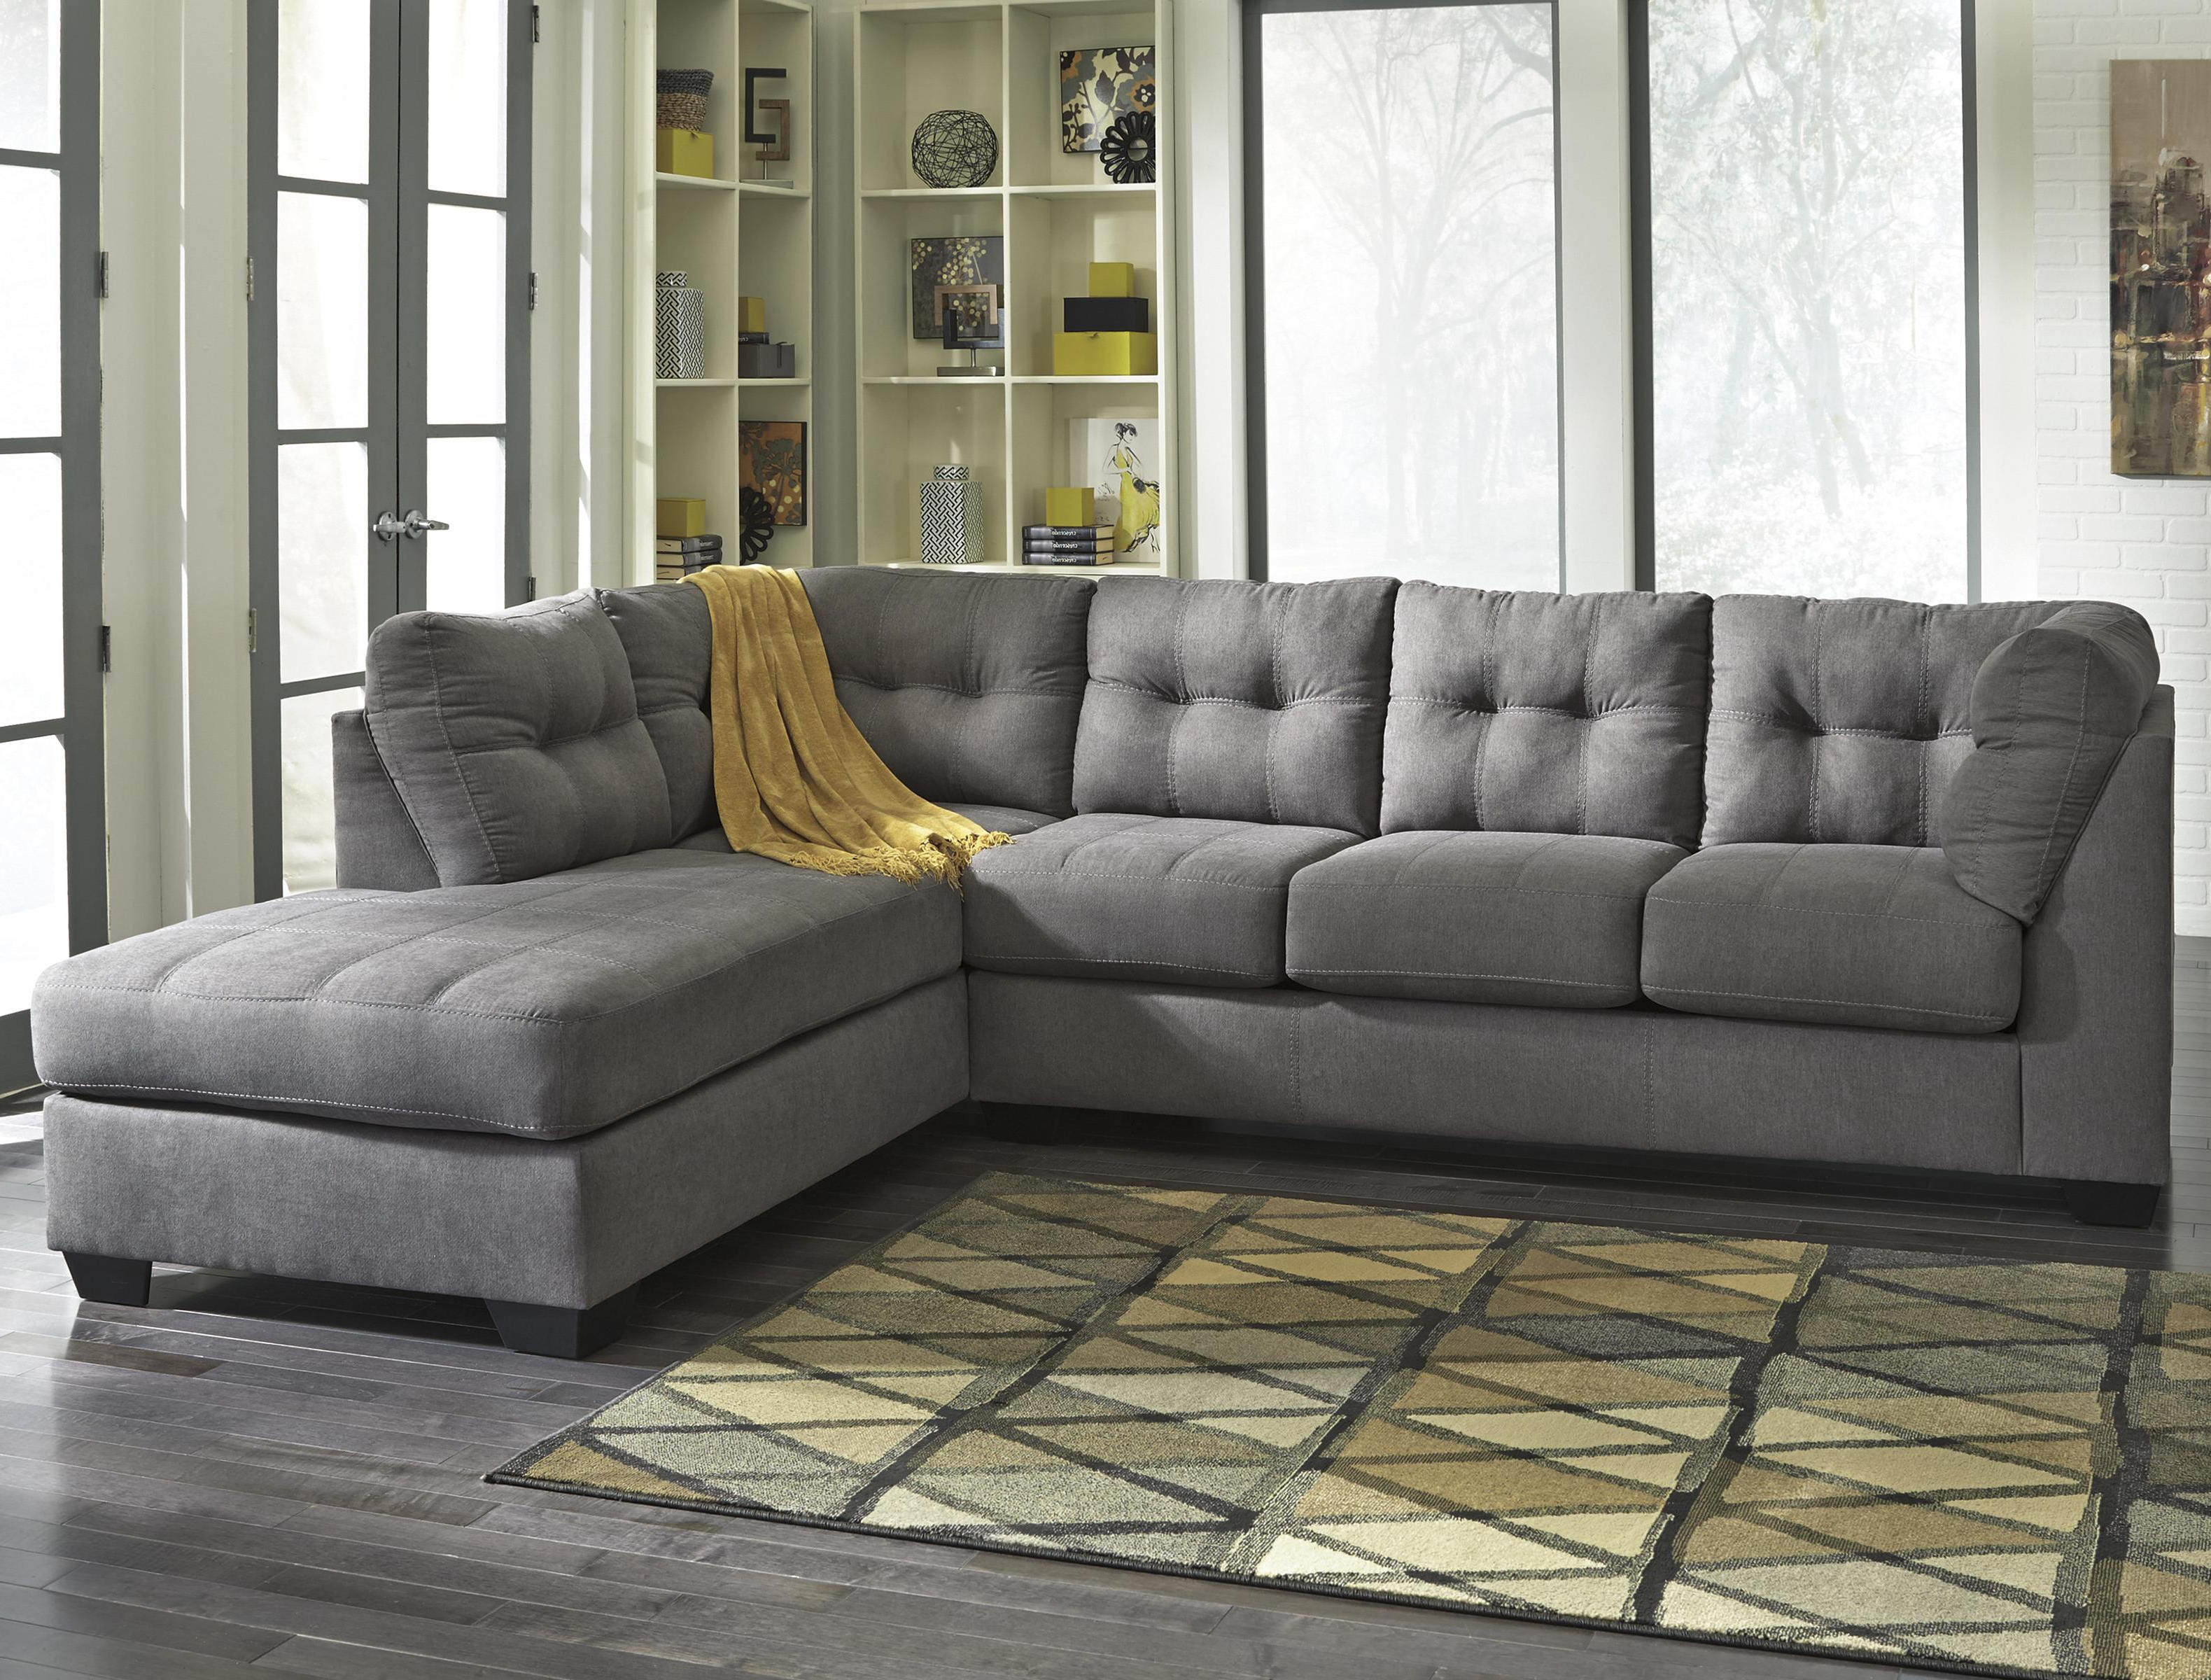 Newest Benchcraft Maier – Charcoal 2 Piece Sectional With Right Chaise Intended For Sierra Foam Ii 3 Piece Sectionals (Gallery 12 of 20)